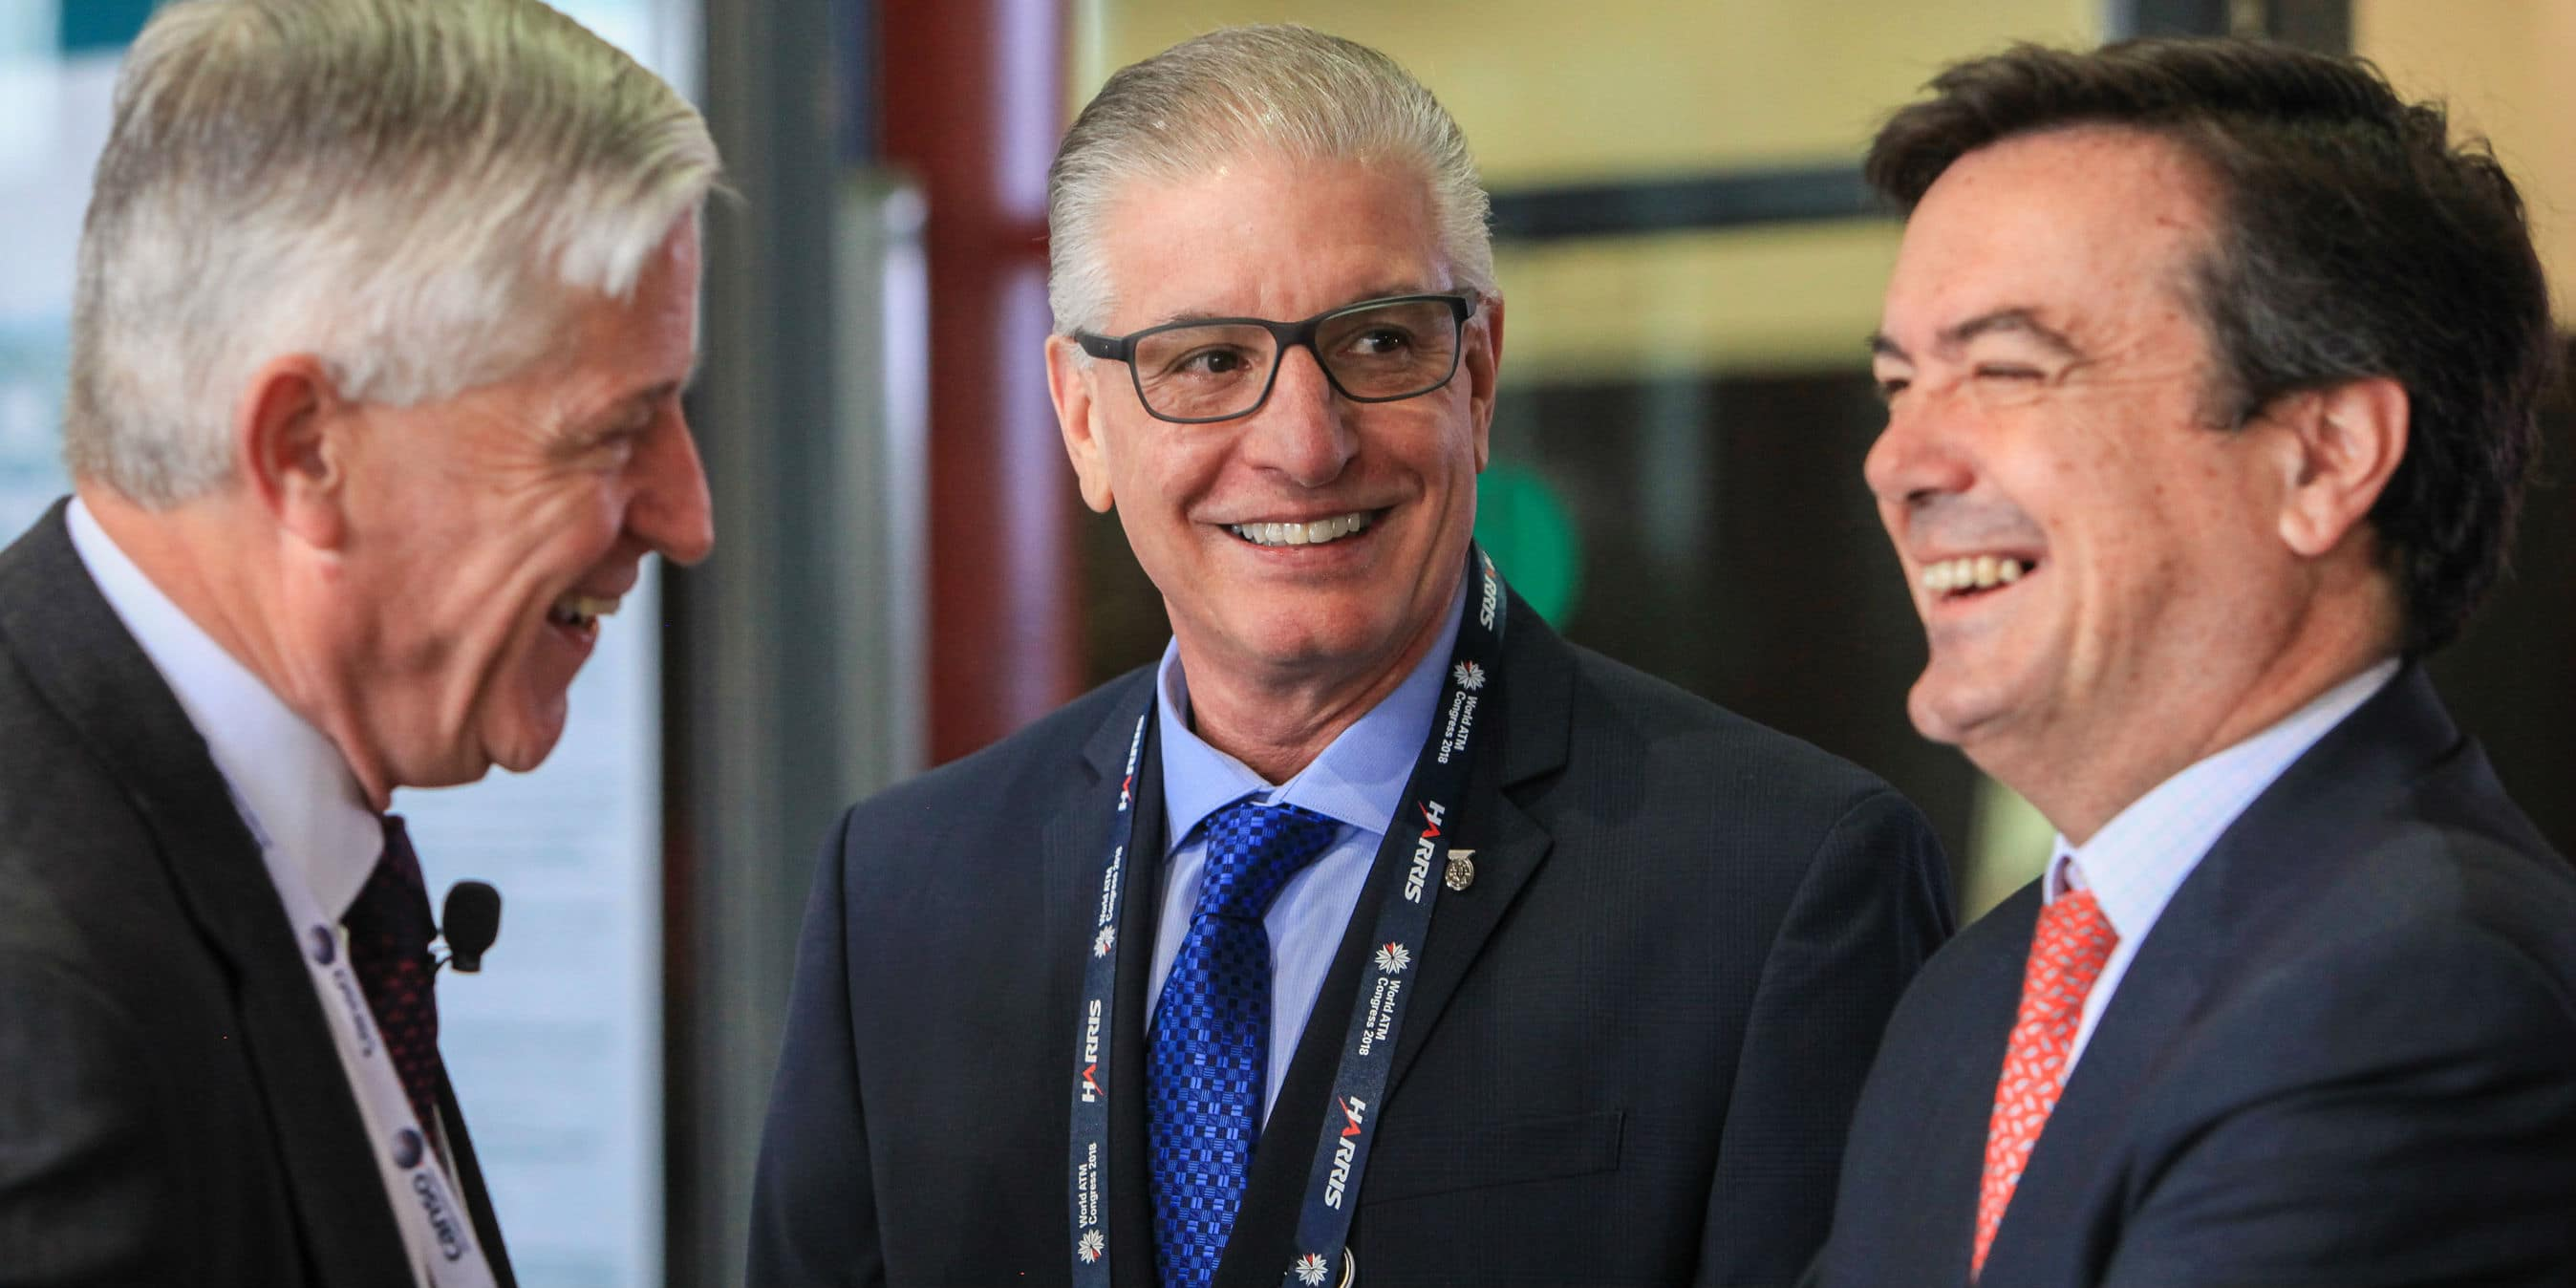 ATCA President and CEO Peter Dumont, center, at the World Air Traffic Management Conference